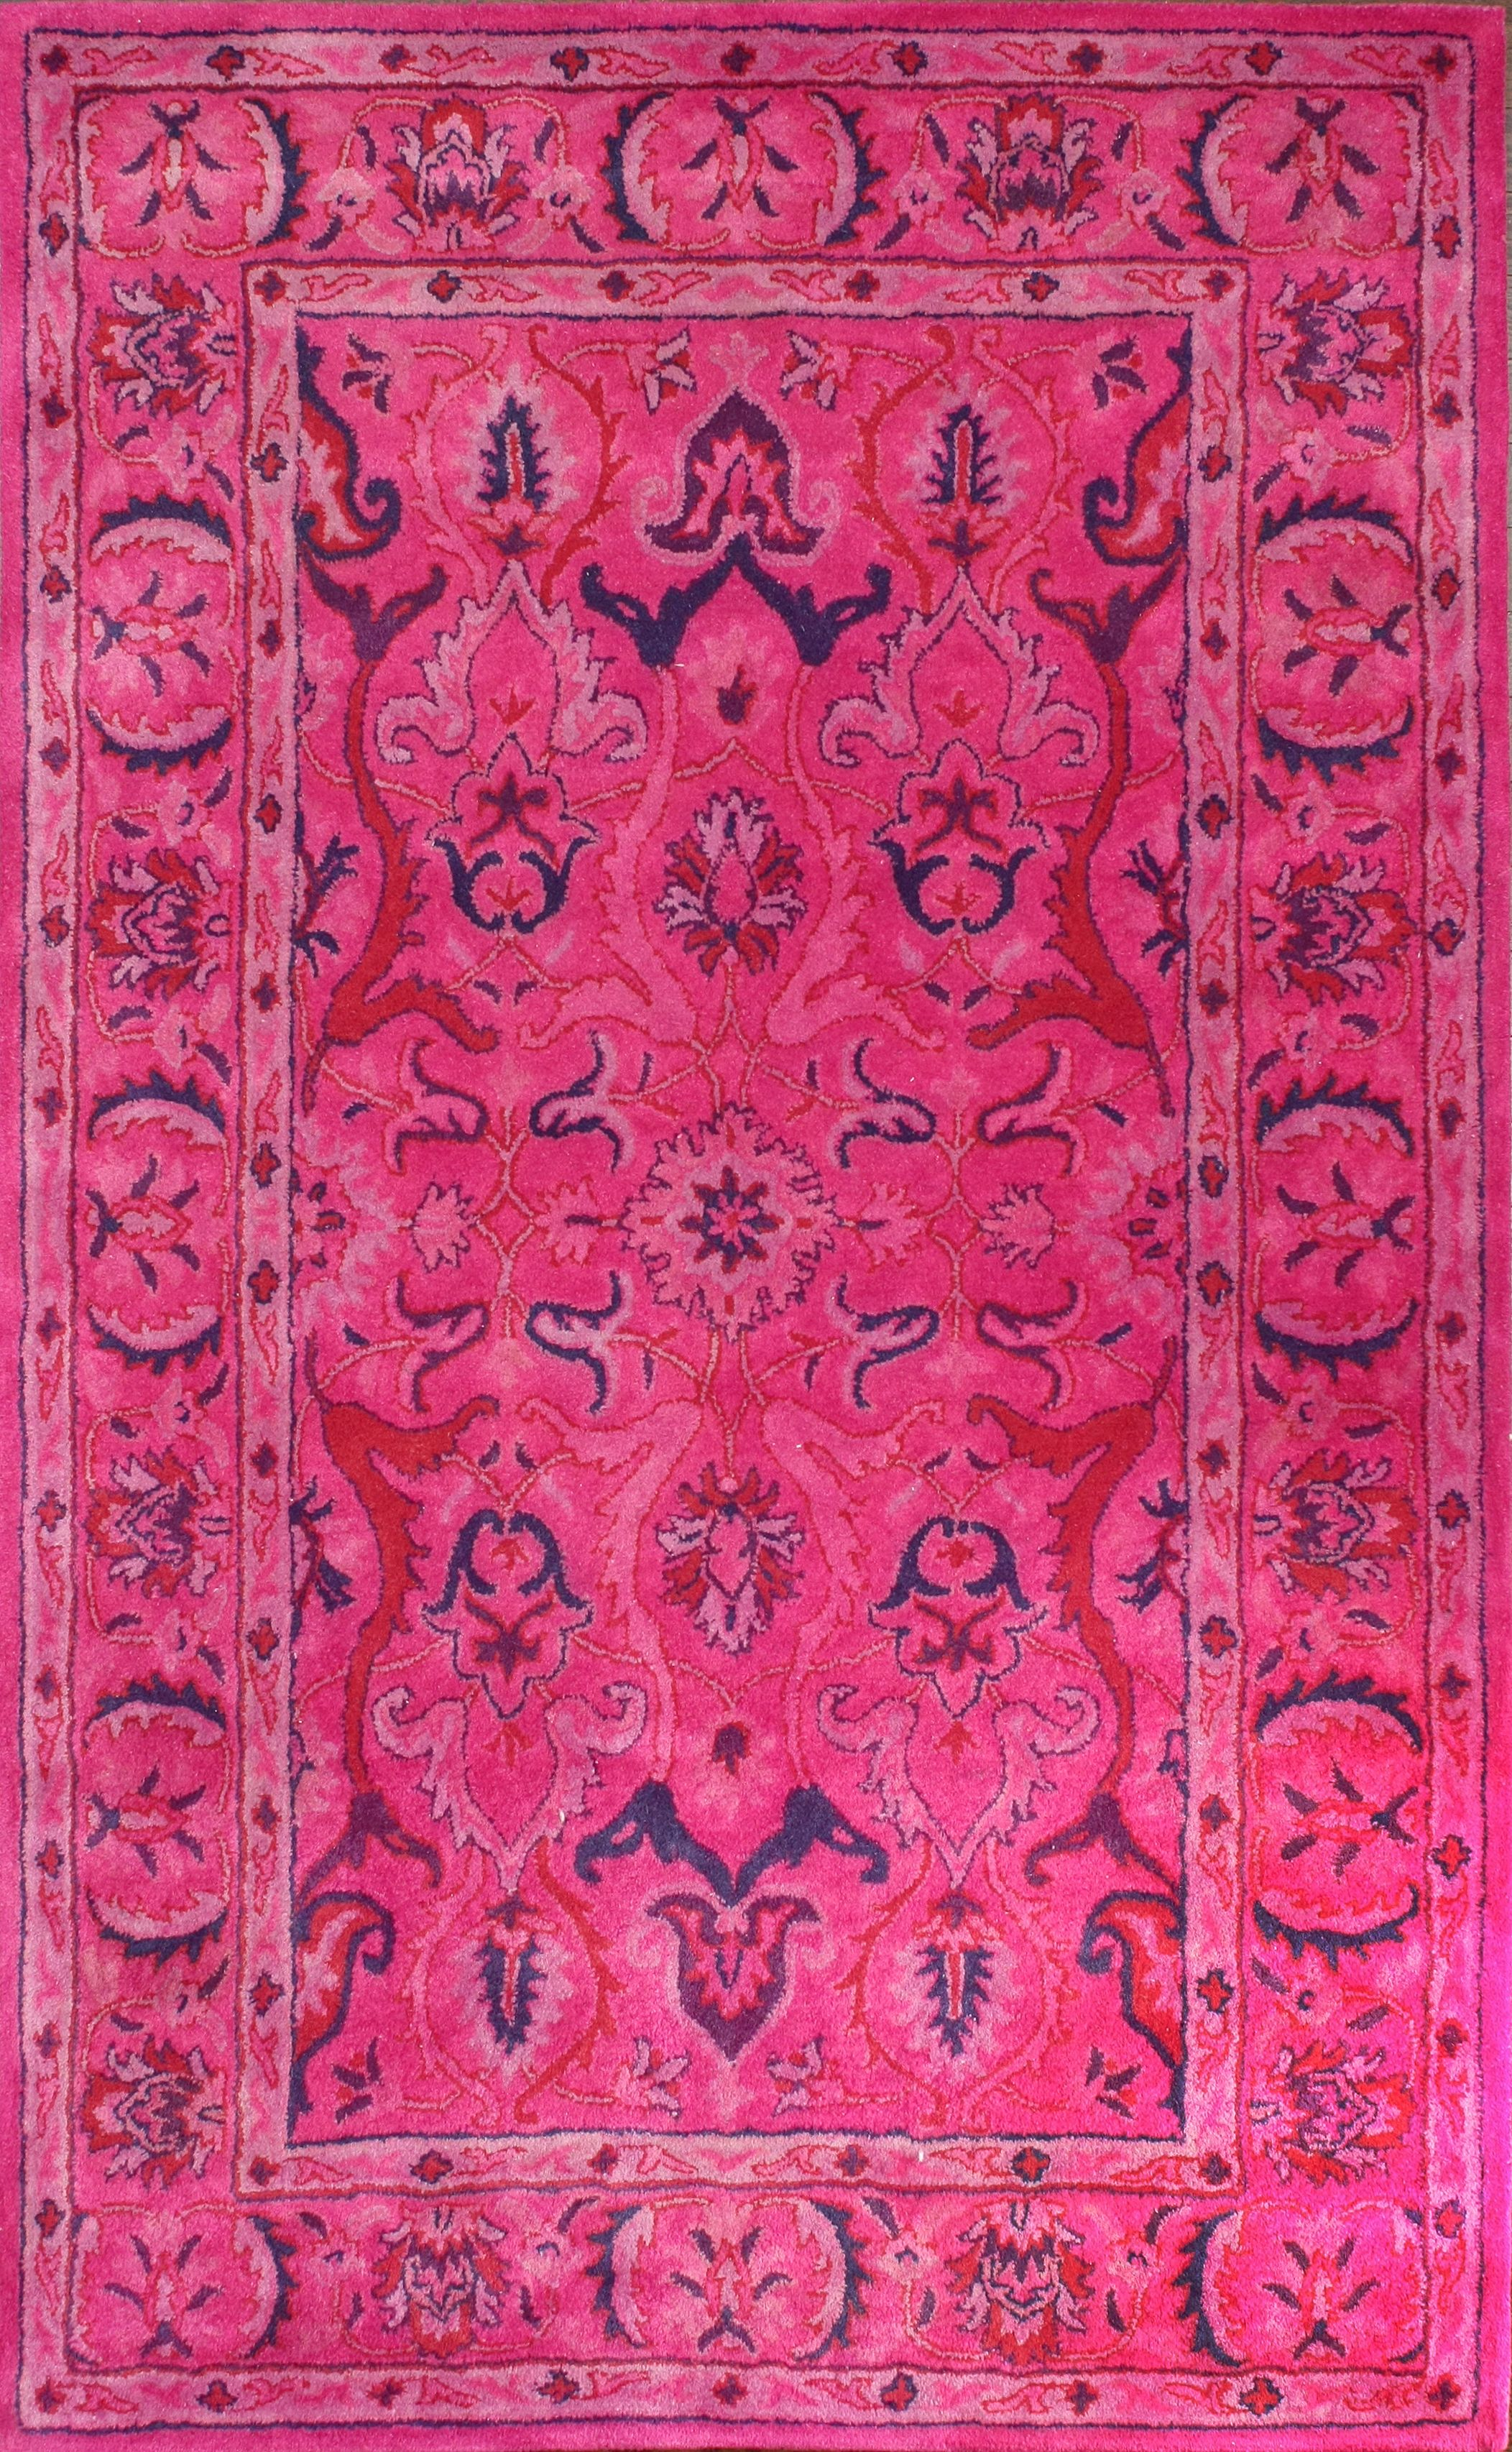 Rugs Usa Overdye Re31 Pink Rug Pink Rug Rugs Usa